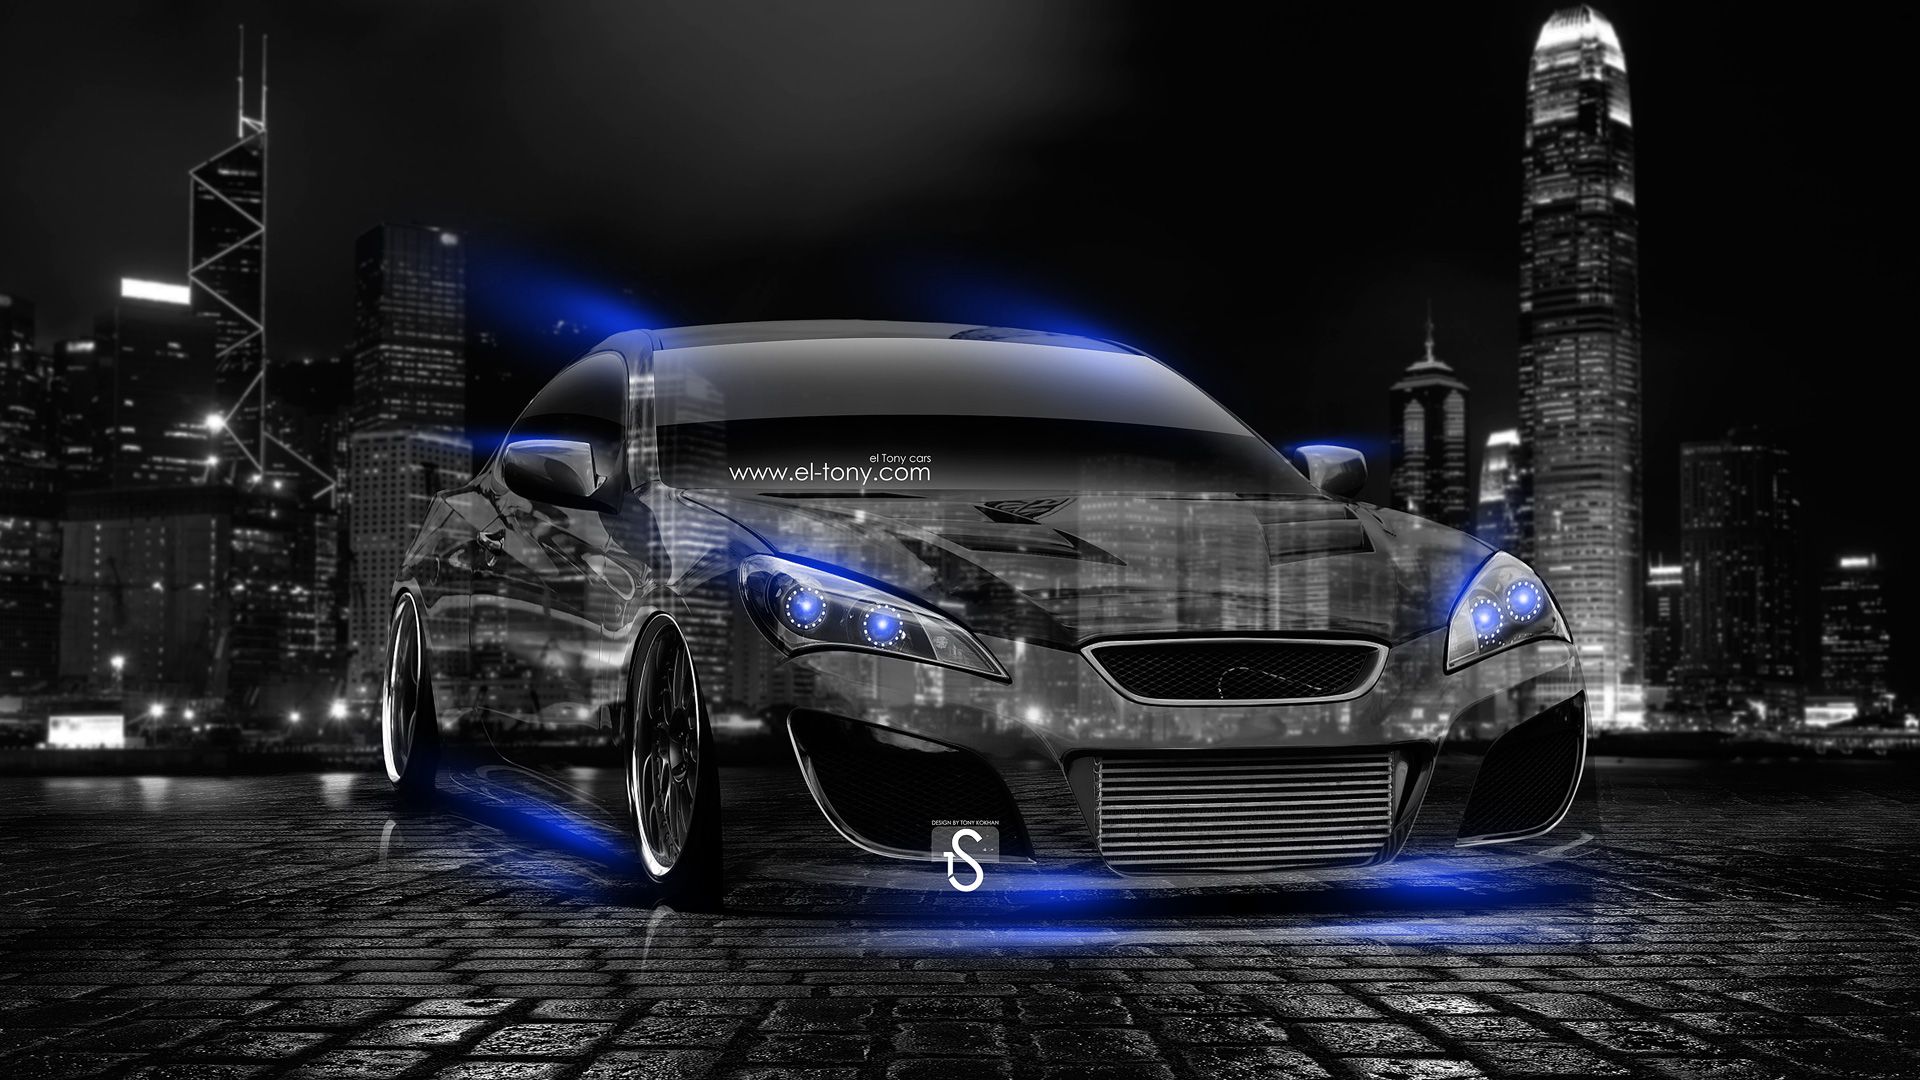 Jdm Car Wallpaper 1920x1080 Hyundai Genesis Coupe Tuning Crystal City Car 2014 El Tony